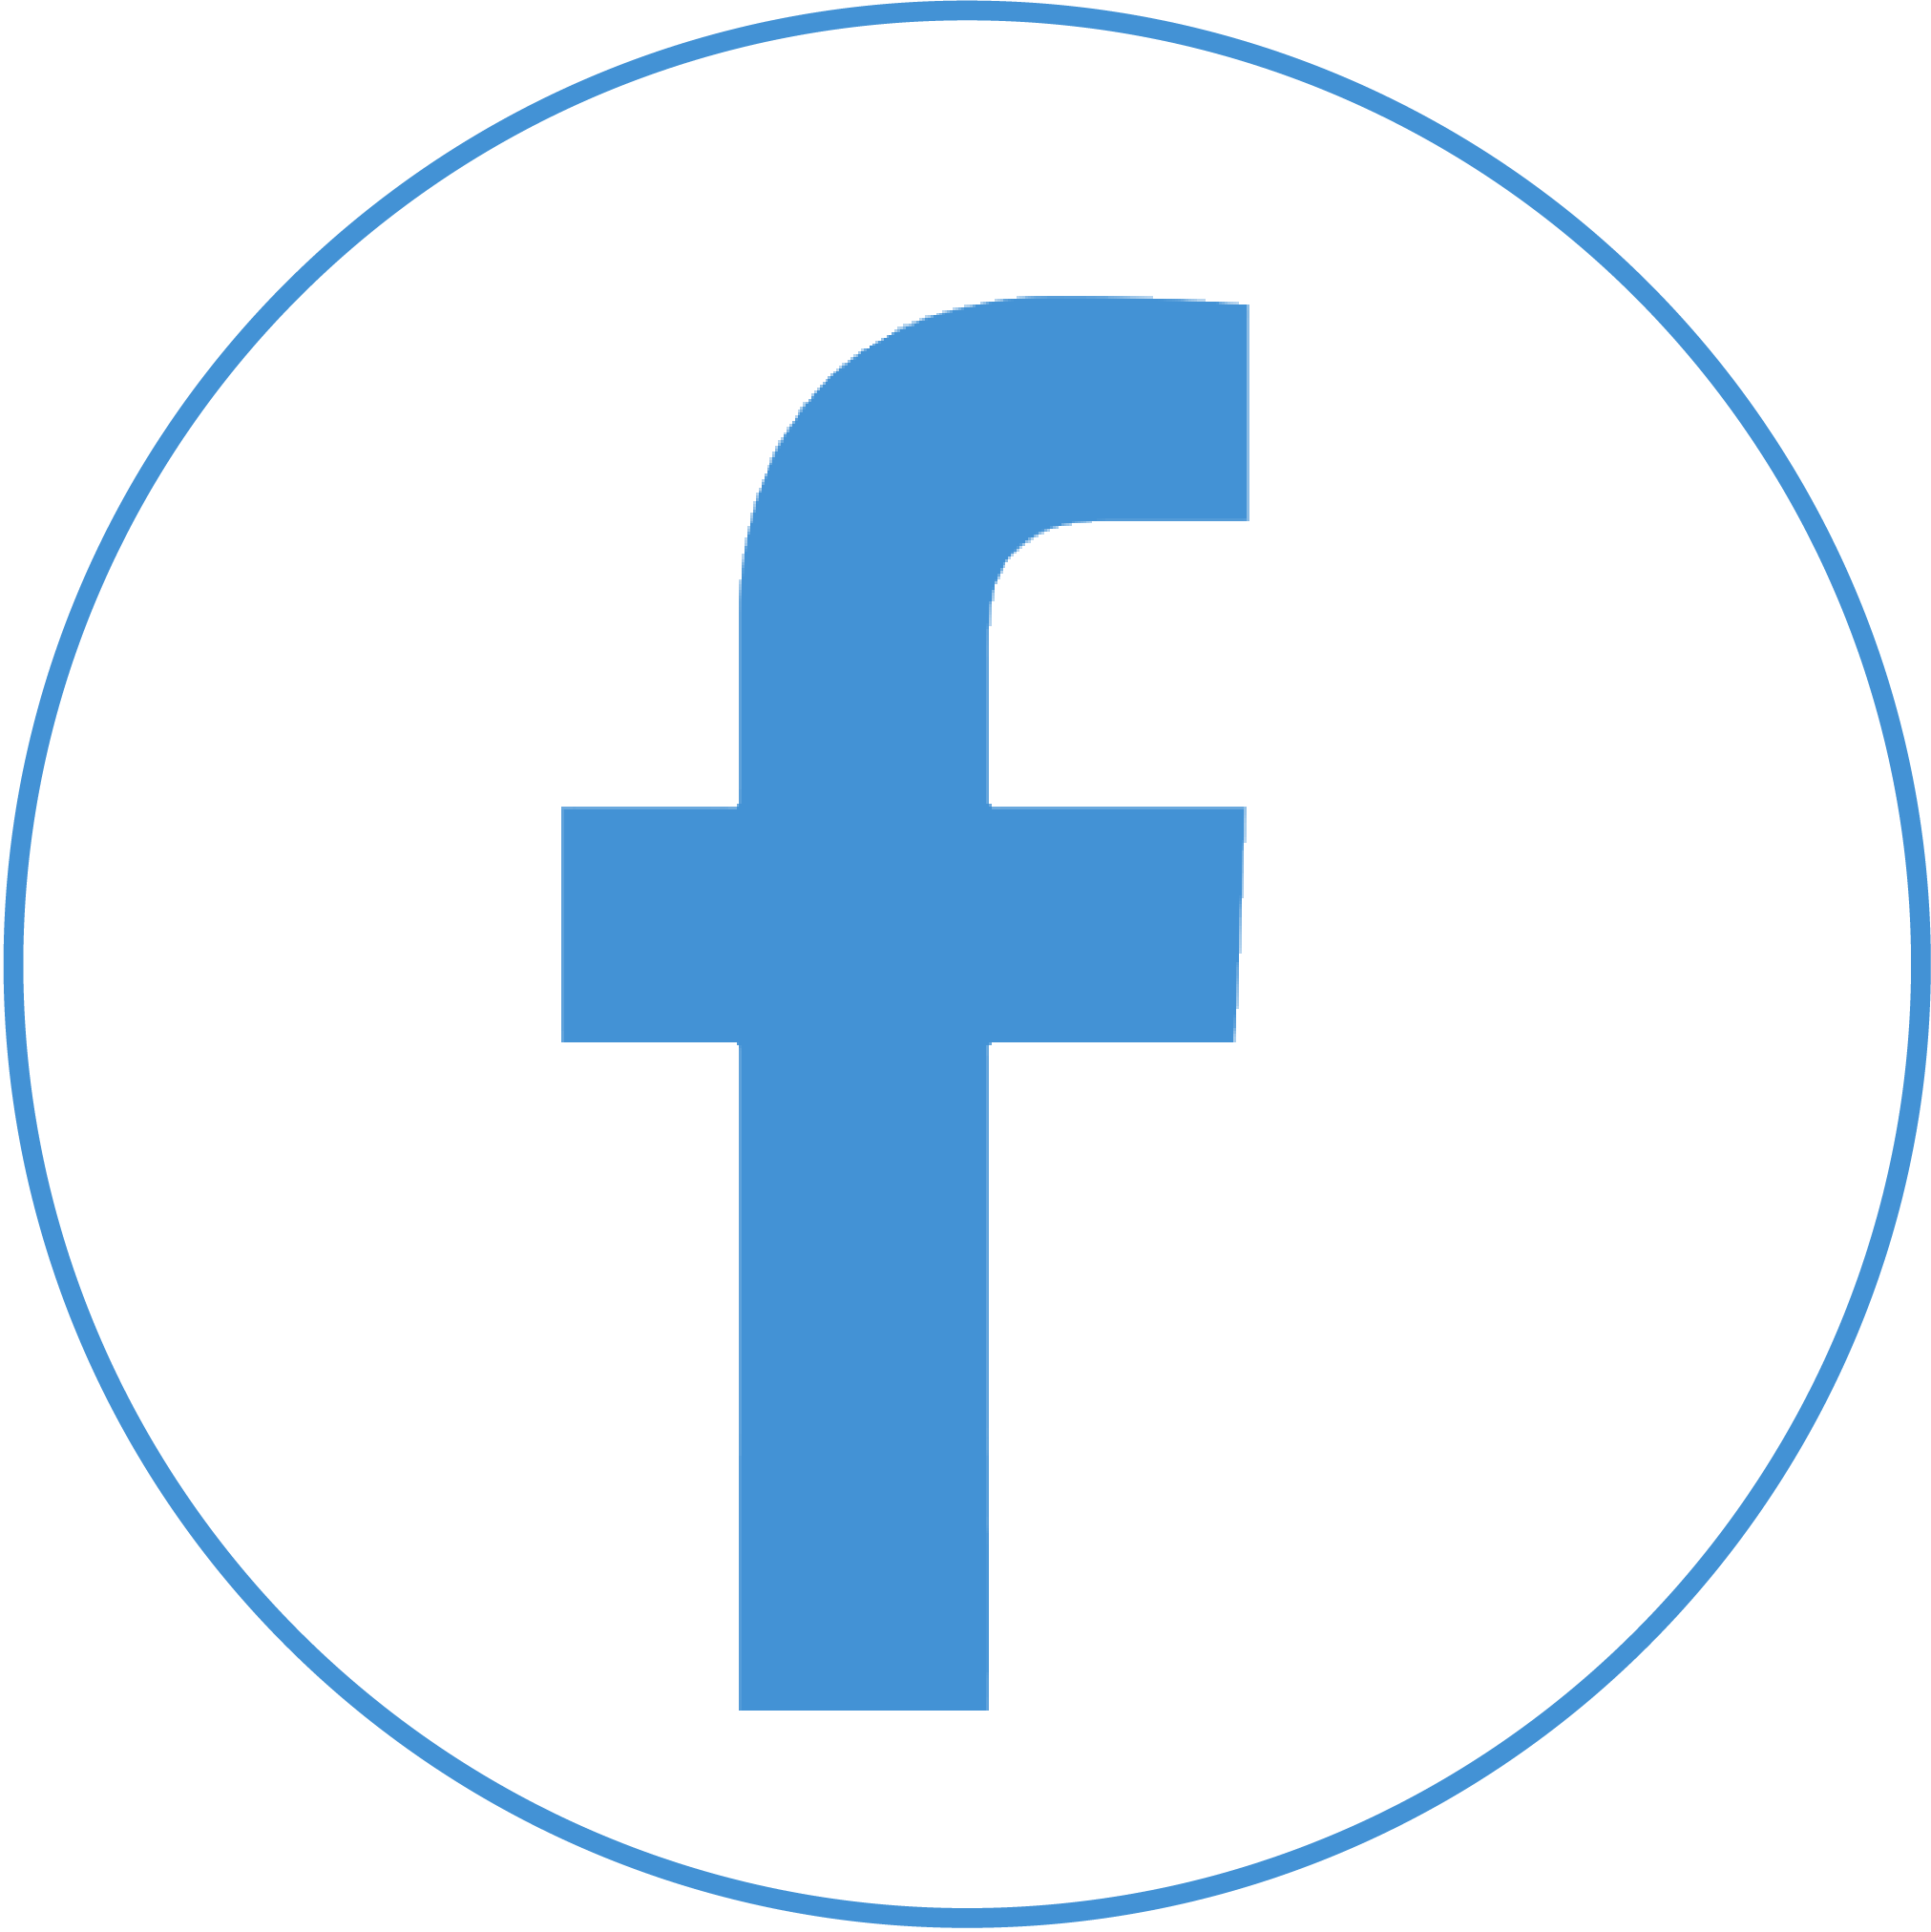 Download facebook free png photo images and clipart freepngimg facebook png hd png image biocorpaavc Images